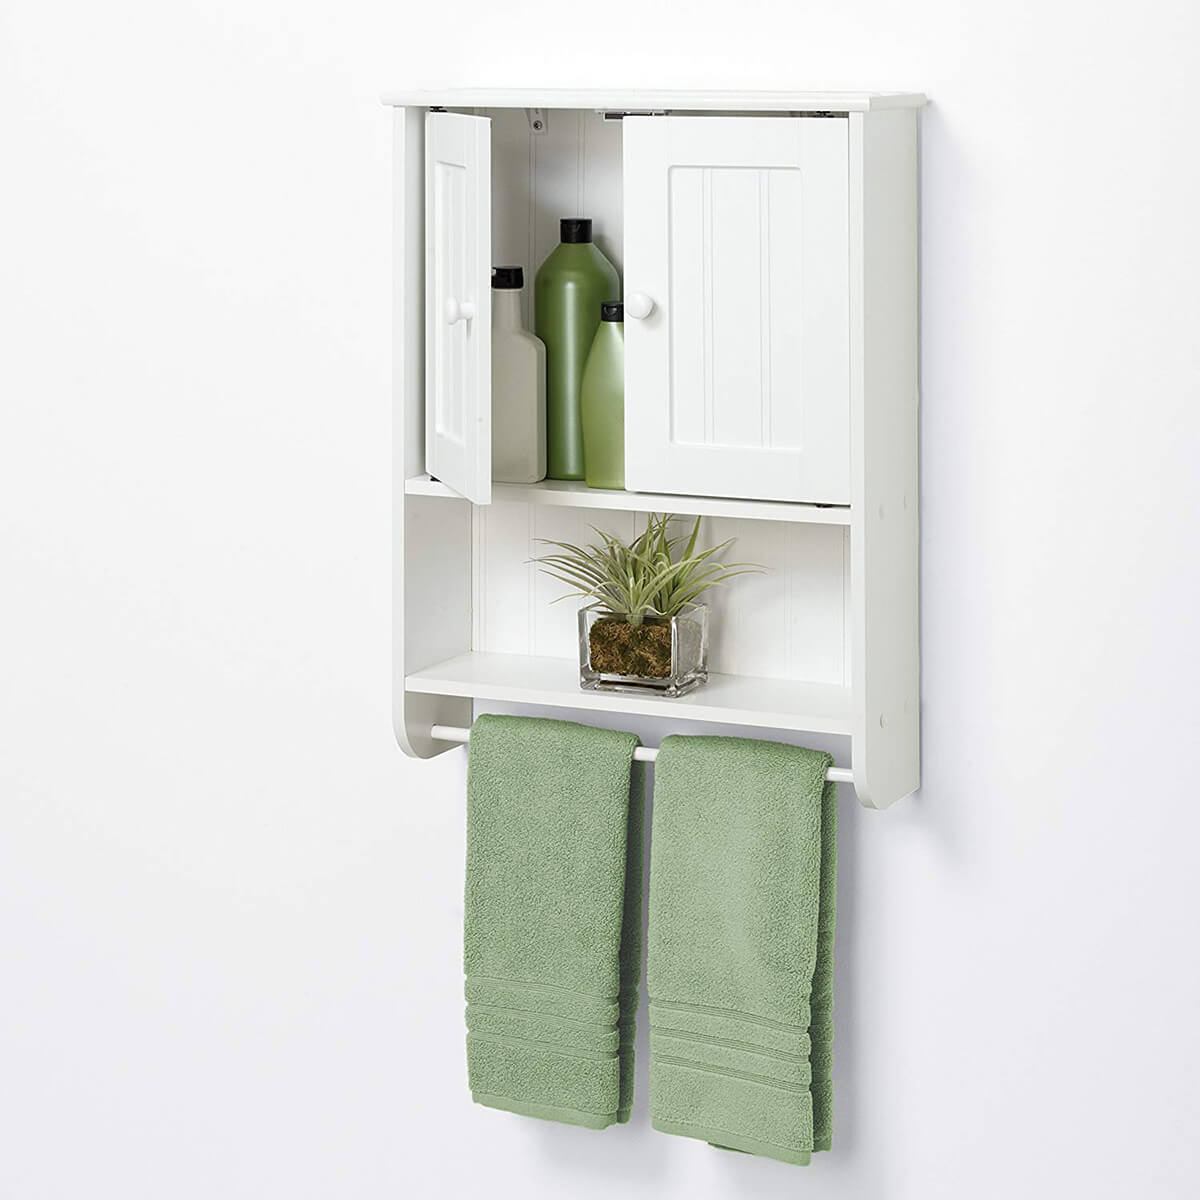 Small Wall Cabinet with Towel Bar